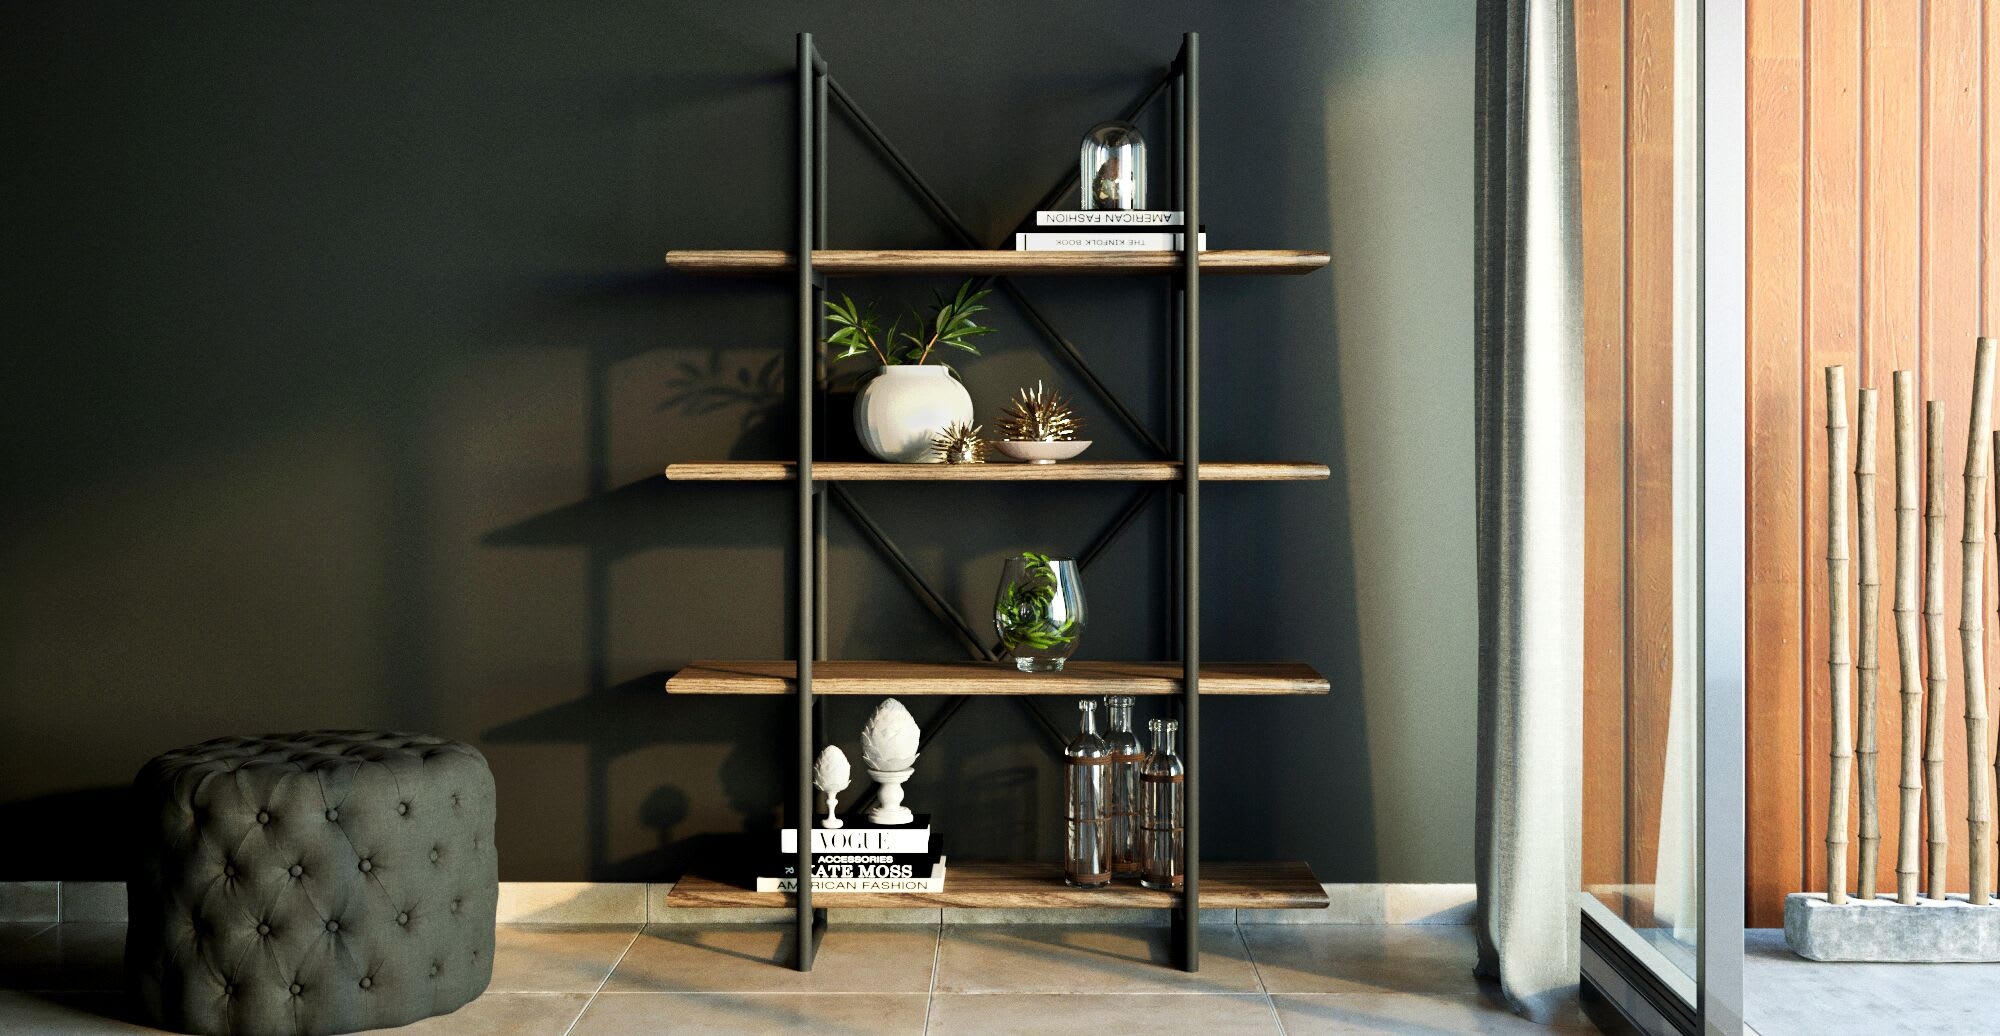 a wooden shelf unit in a designed space